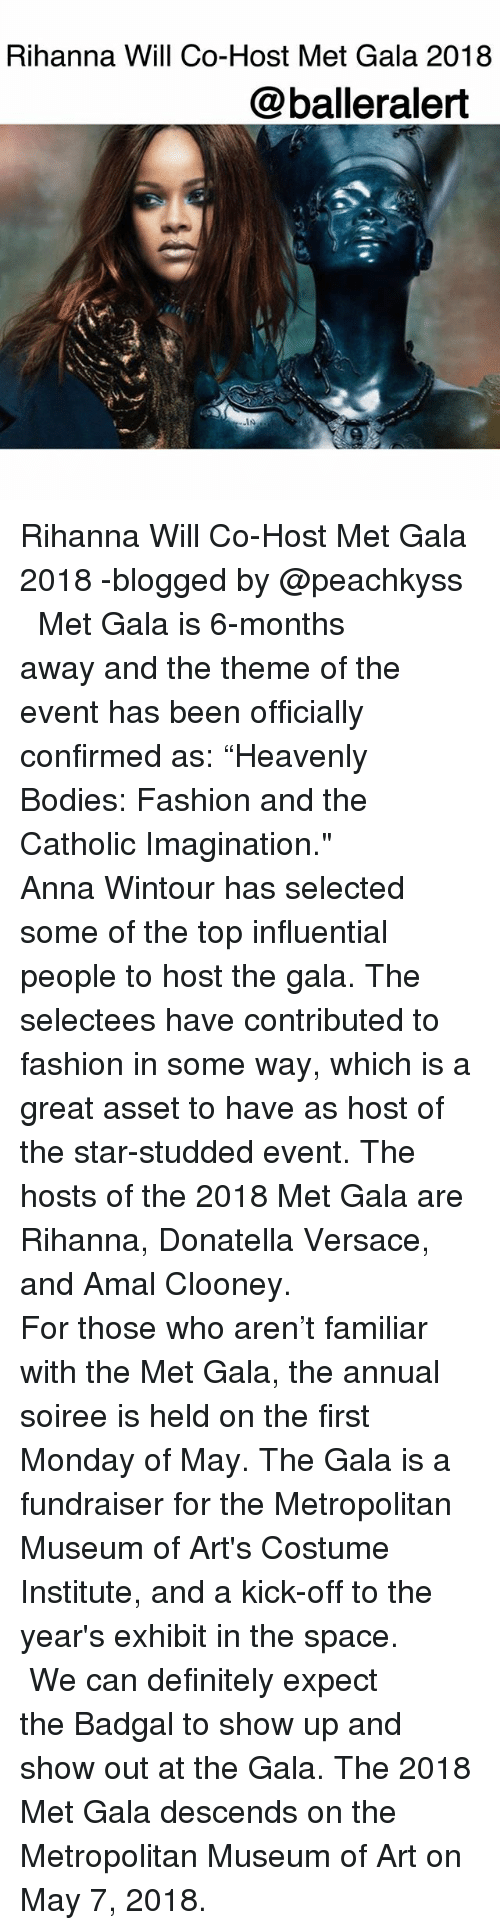 "Anna, Bodies , and Definitely: Rihanna Will Co-Host Met Gala 2018  @balleralert Rihanna Will Co-Host Met Gala 2018 -blogged by @peachkyss ⠀⠀⠀⠀⠀⠀⠀ ⠀⠀⠀⠀⠀⠀⠀ Met Gala is 6-months away and the theme of the event has been officially confirmed as: ""Heavenly Bodies: Fashion and the Catholic Imagination."" ⠀⠀⠀⠀⠀⠀⠀ ⠀⠀⠀⠀⠀⠀⠀ Anna Wintour has selected some of the top influential people to host the gala. The selectees have contributed to fashion in some way, which is a great asset to have as host of the star-studded event. The hosts of the 2018 Met Gala are Rihanna, Donatella Versace, and Amal Clooney. ⠀⠀⠀⠀⠀⠀⠀ ⠀⠀⠀⠀⠀⠀⠀ For those who aren't familiar with the Met Gala, the annual soiree is held on the first Monday of May. The Gala is a fundraiser for the Metropolitan Museum of Art's Costume Institute, and a kick-off to the year's exhibit in the space. ⠀⠀⠀⠀⠀⠀⠀ ⠀⠀⠀⠀⠀⠀⠀ We can definitely expect the Badgal to show up and show out at the Gala. The 2018 Met Gala descends on the Metropolitan Museum of Art on May 7, 2018."